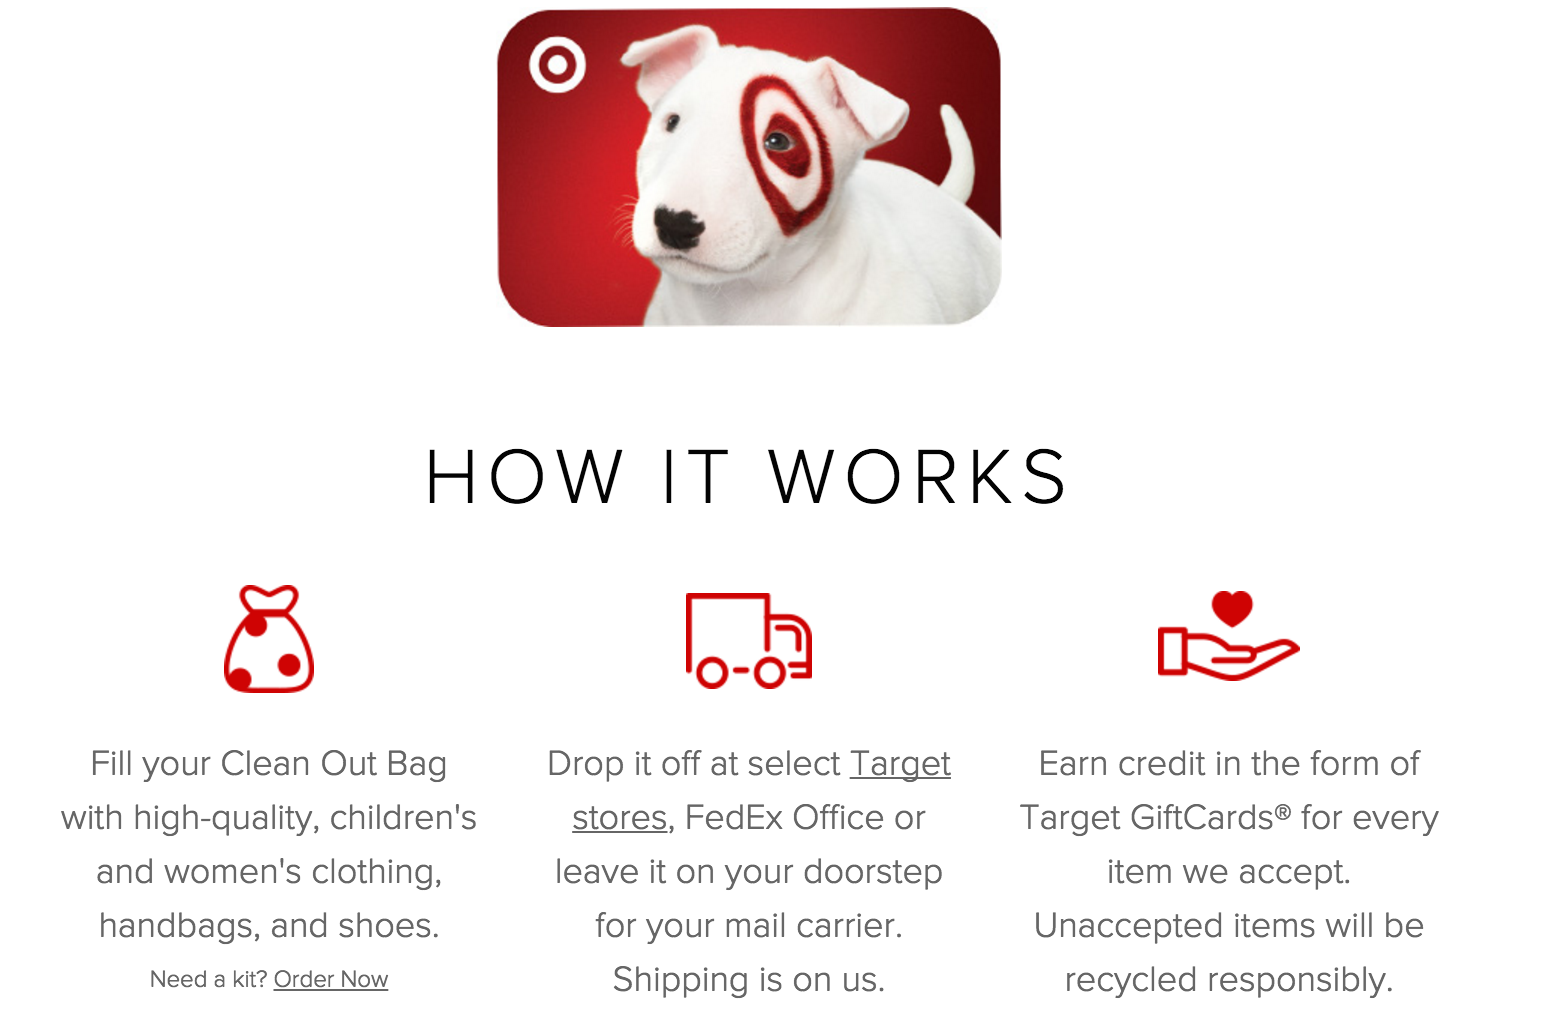 Target partnered with online consignment store ThredUP to offer customers gift card for their old outfits.